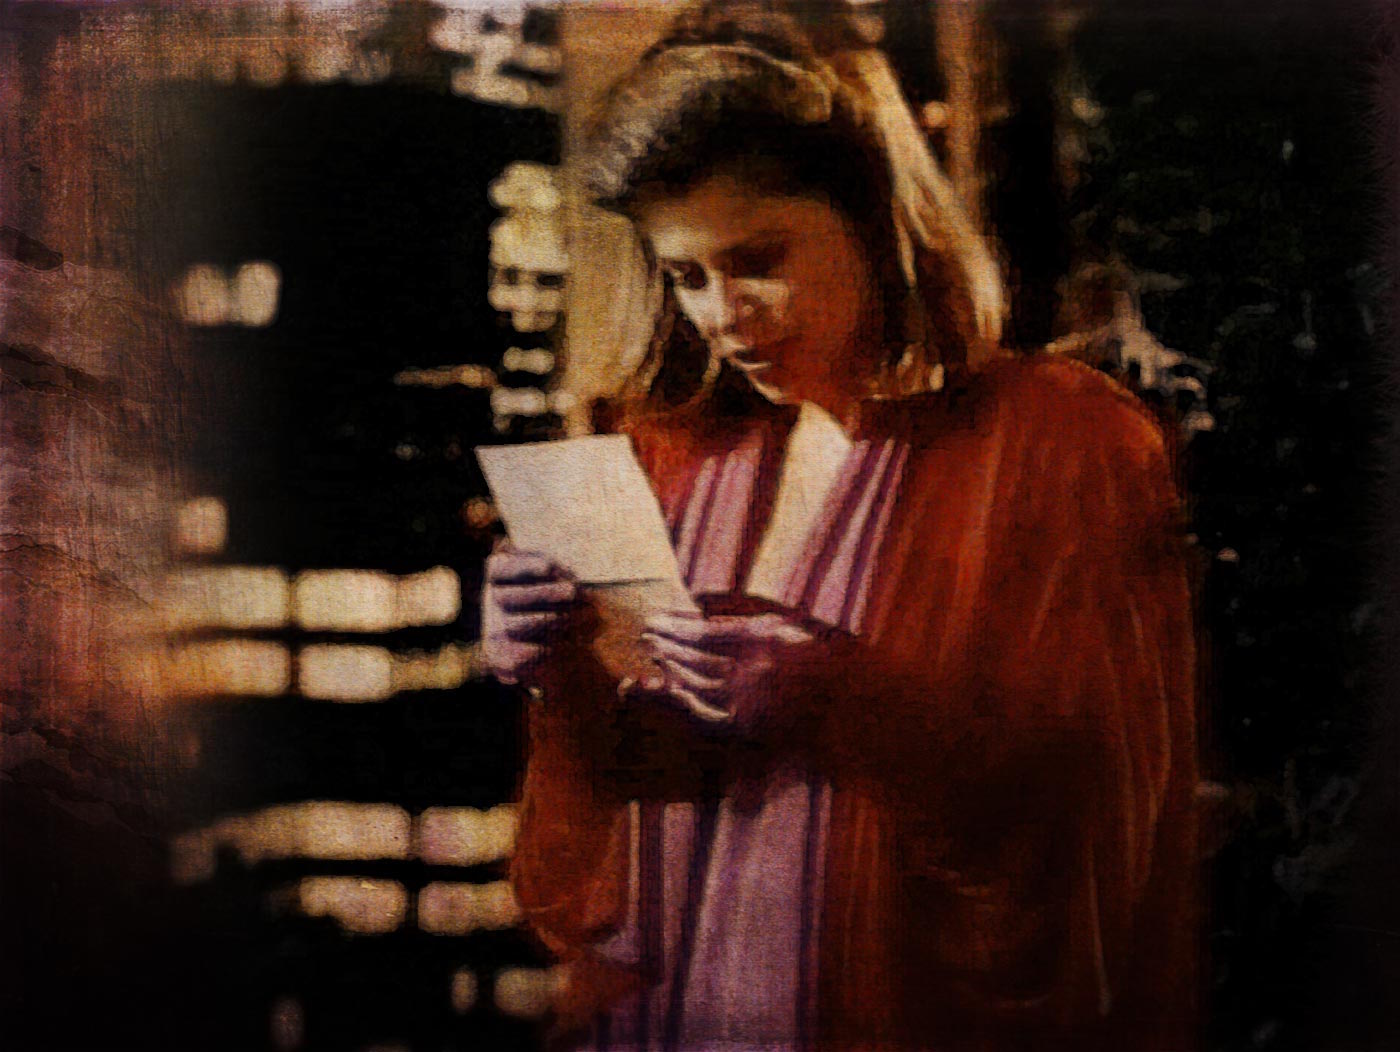 Catherine on her balcony, reading a note from Vincent and smiling